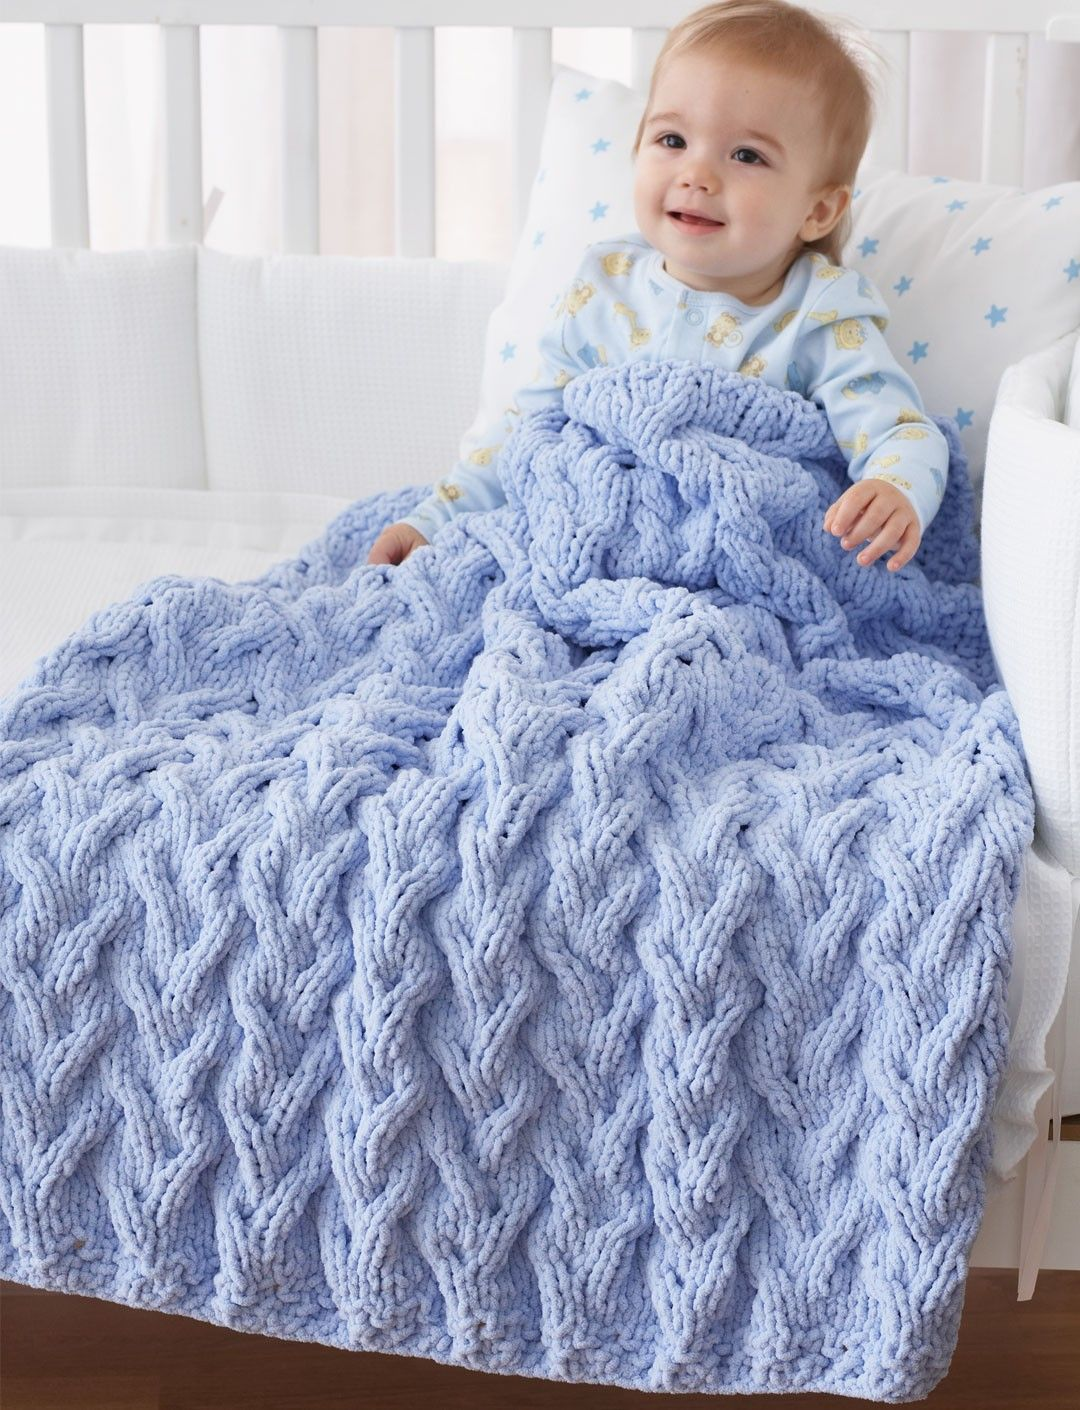 Knitting Blankets : Cable afghan knitting patterns blanket and